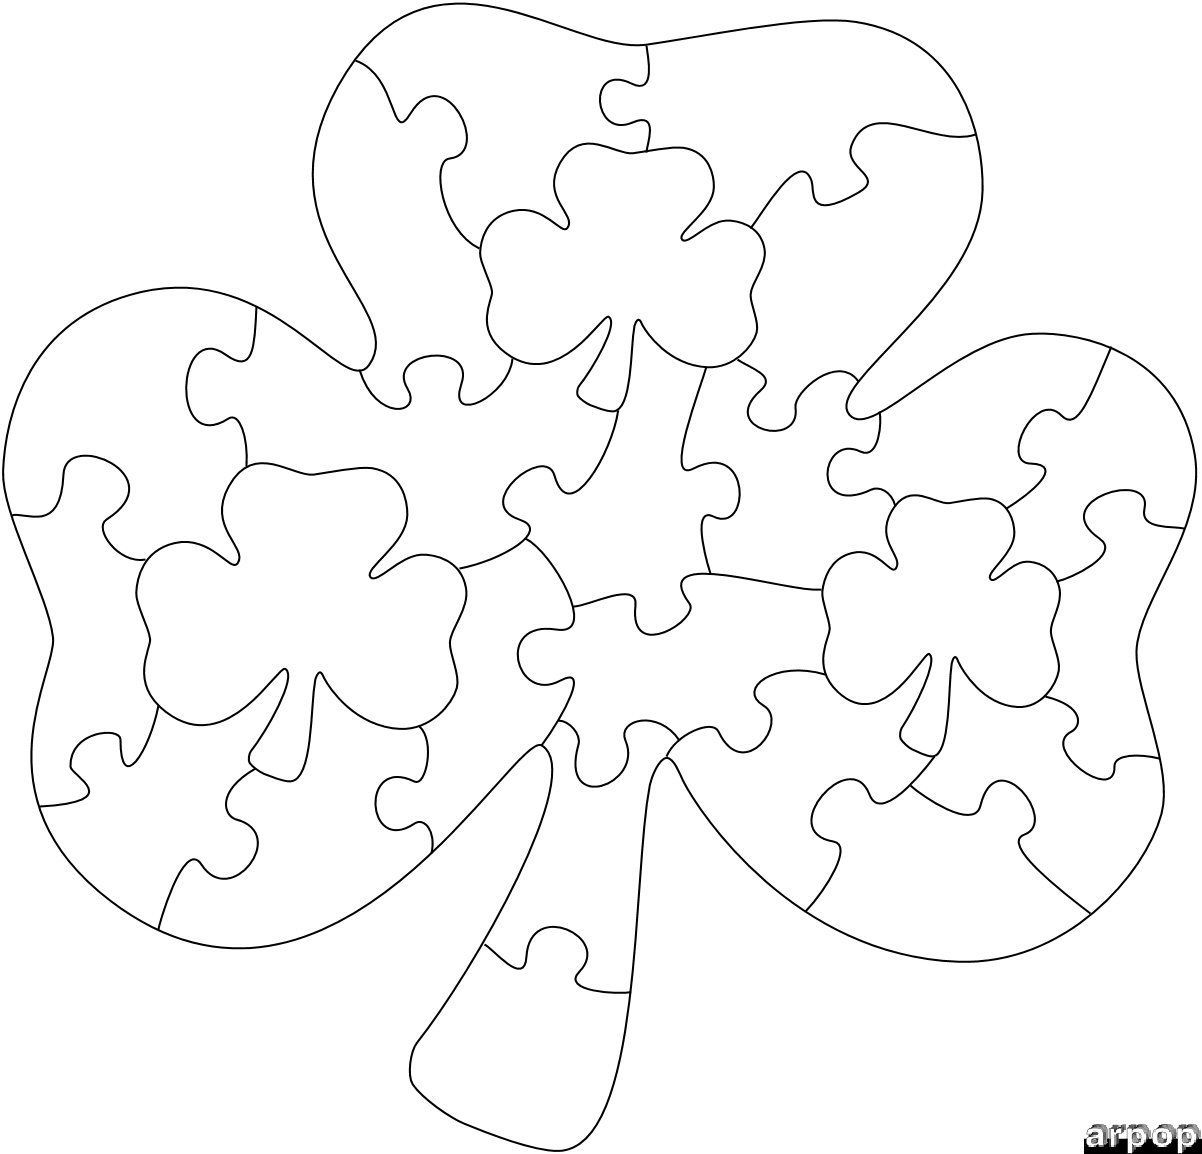 Free scroll saw patterns download at shareware update in